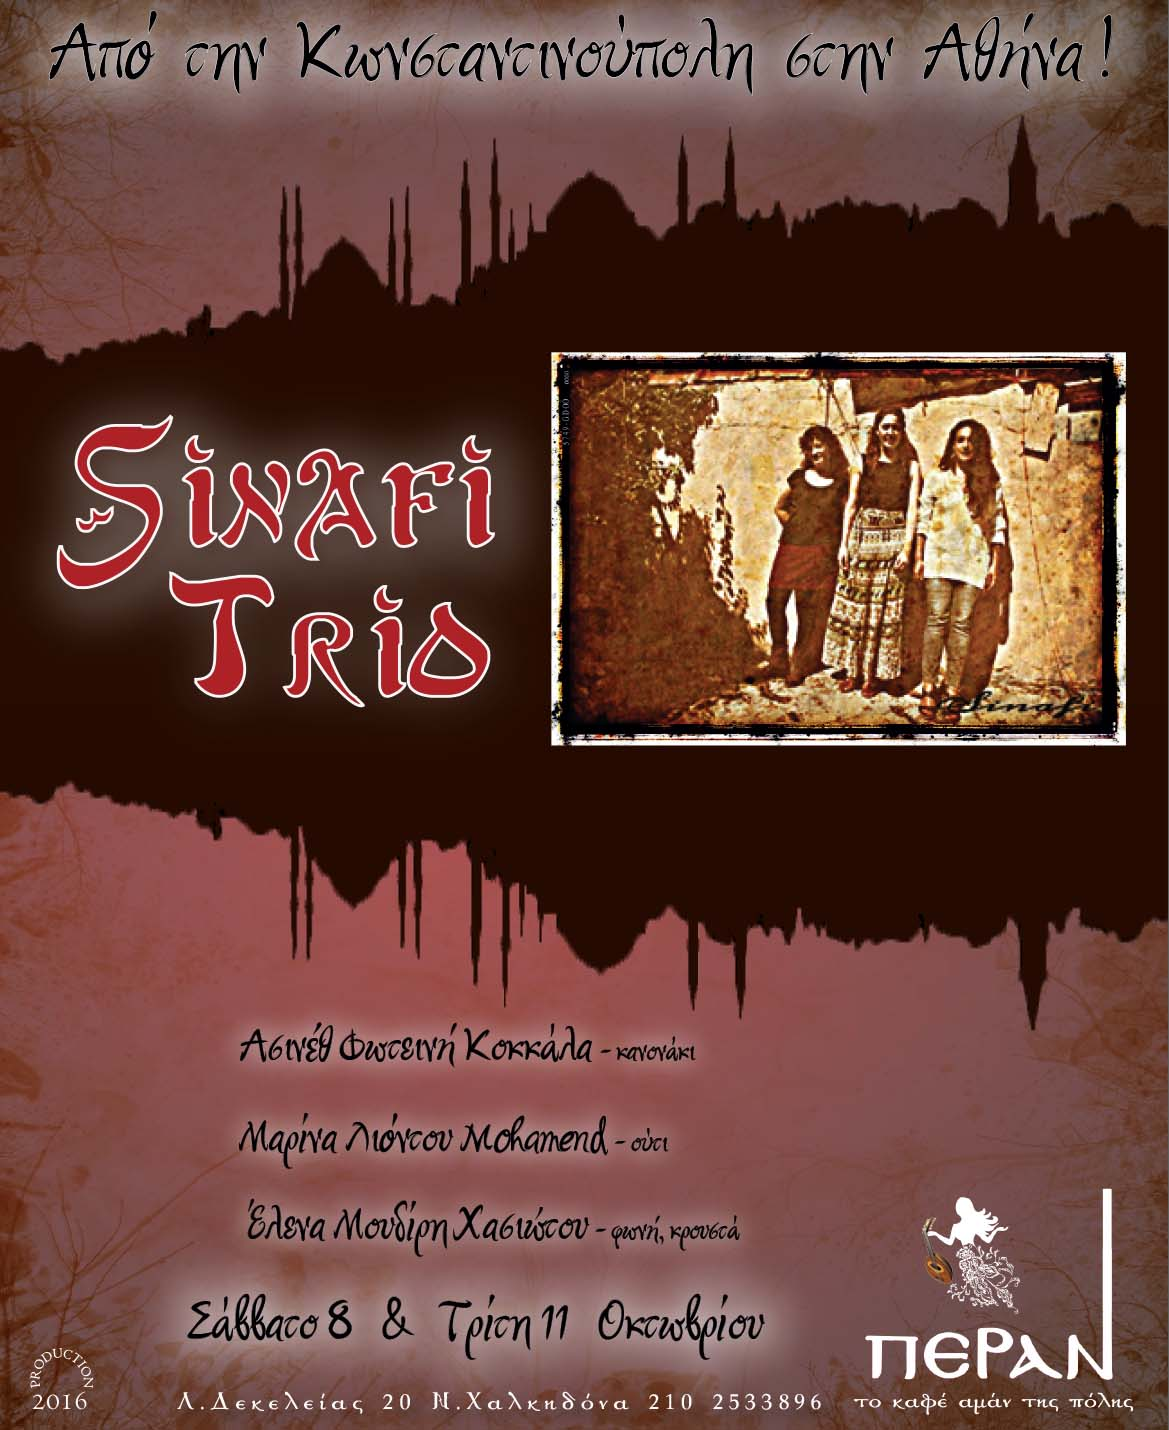 SINAFI TRIO OCTOBER 2016